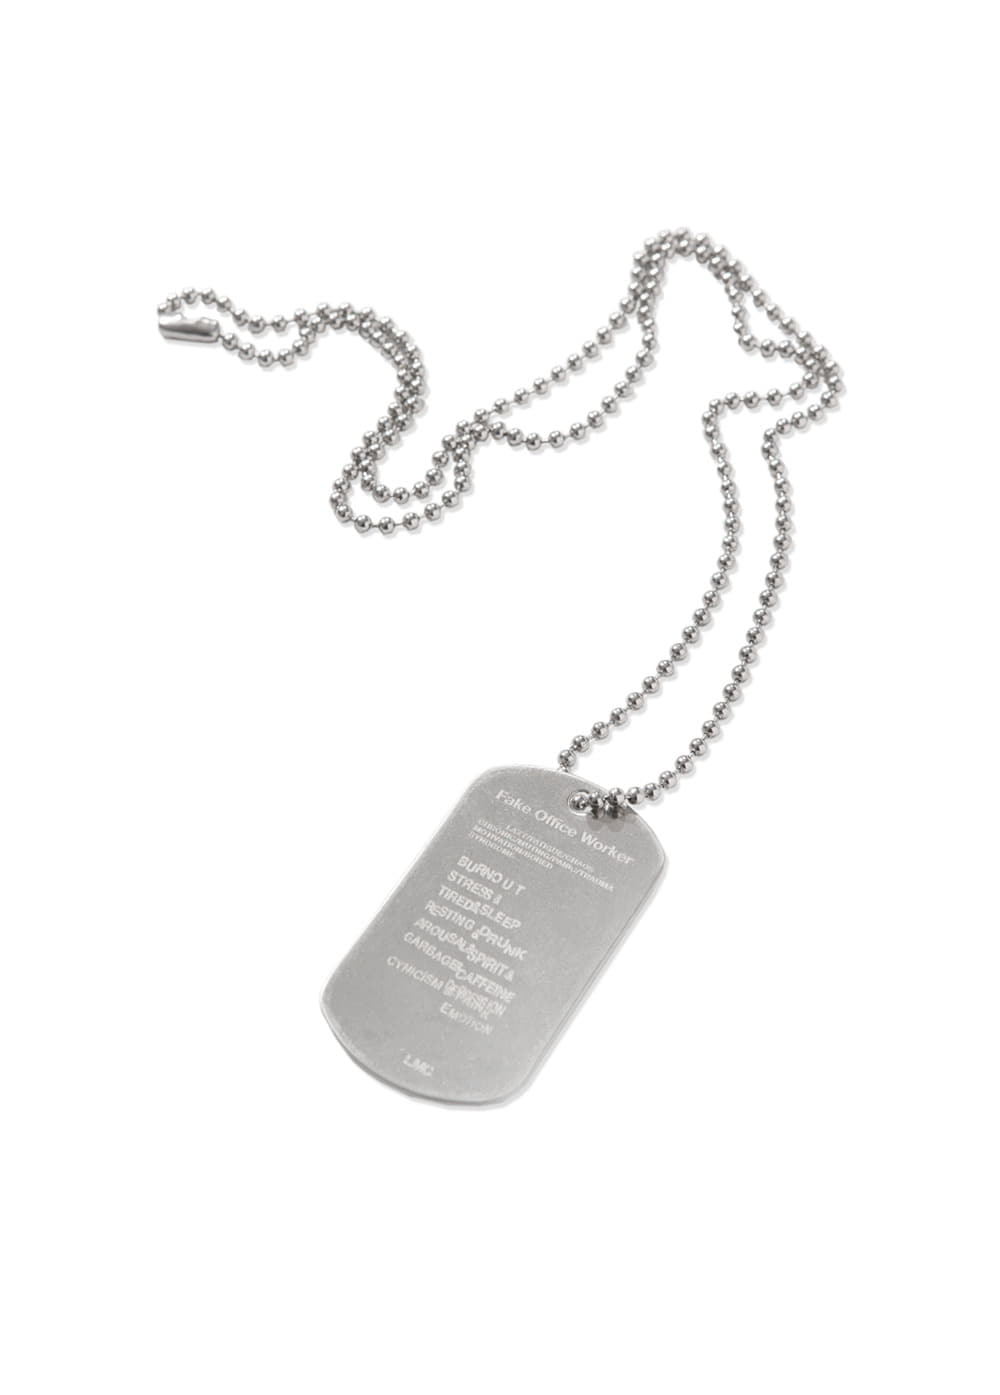 F.O.W DOG TAG REMADE BY LMC silver